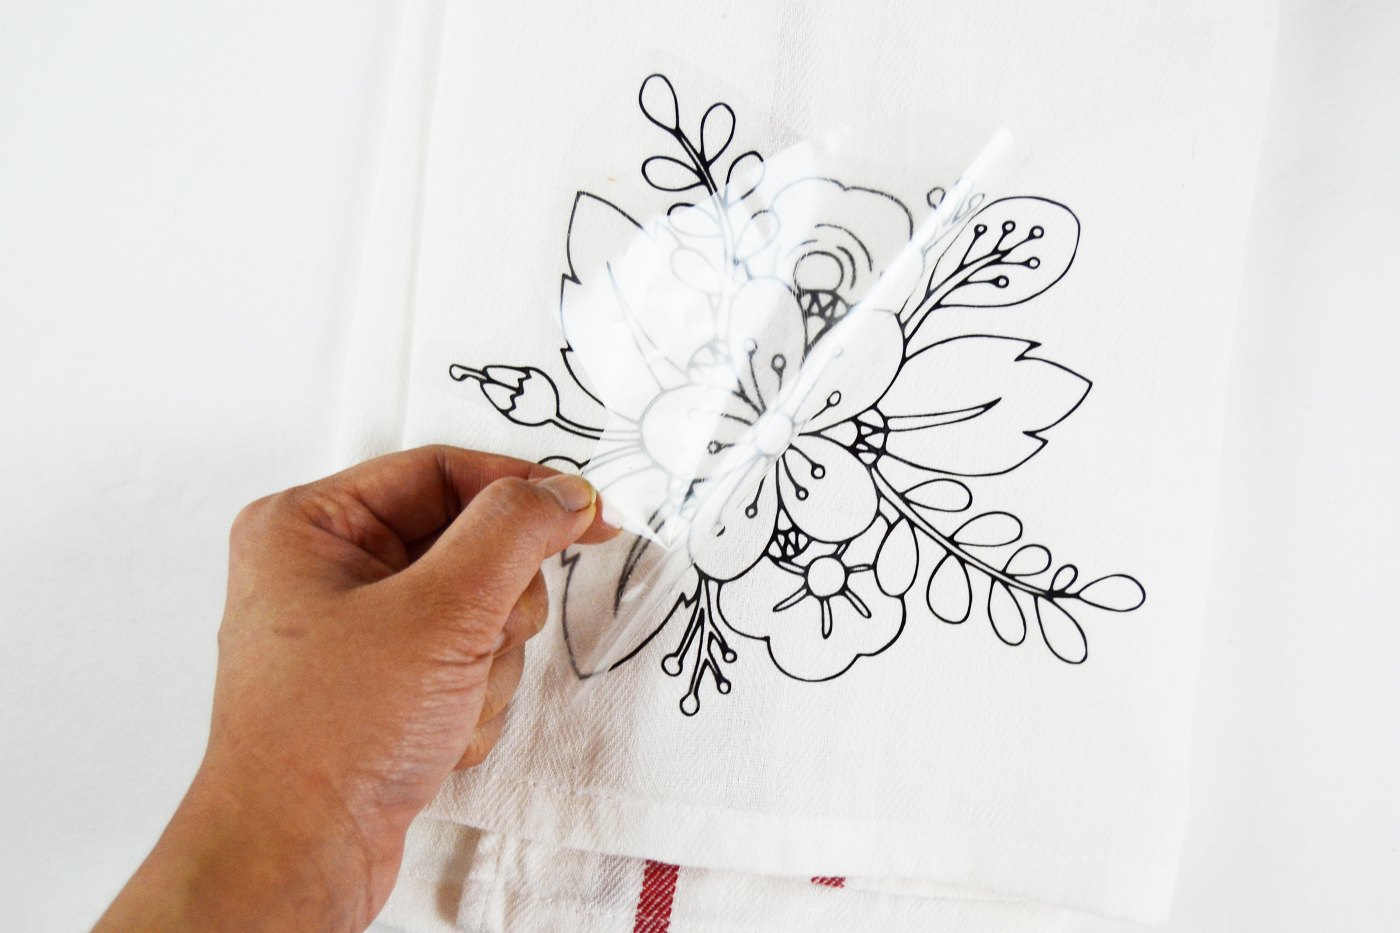 coloring-book-tea-towel-minted-strawberry-diy-candy-6